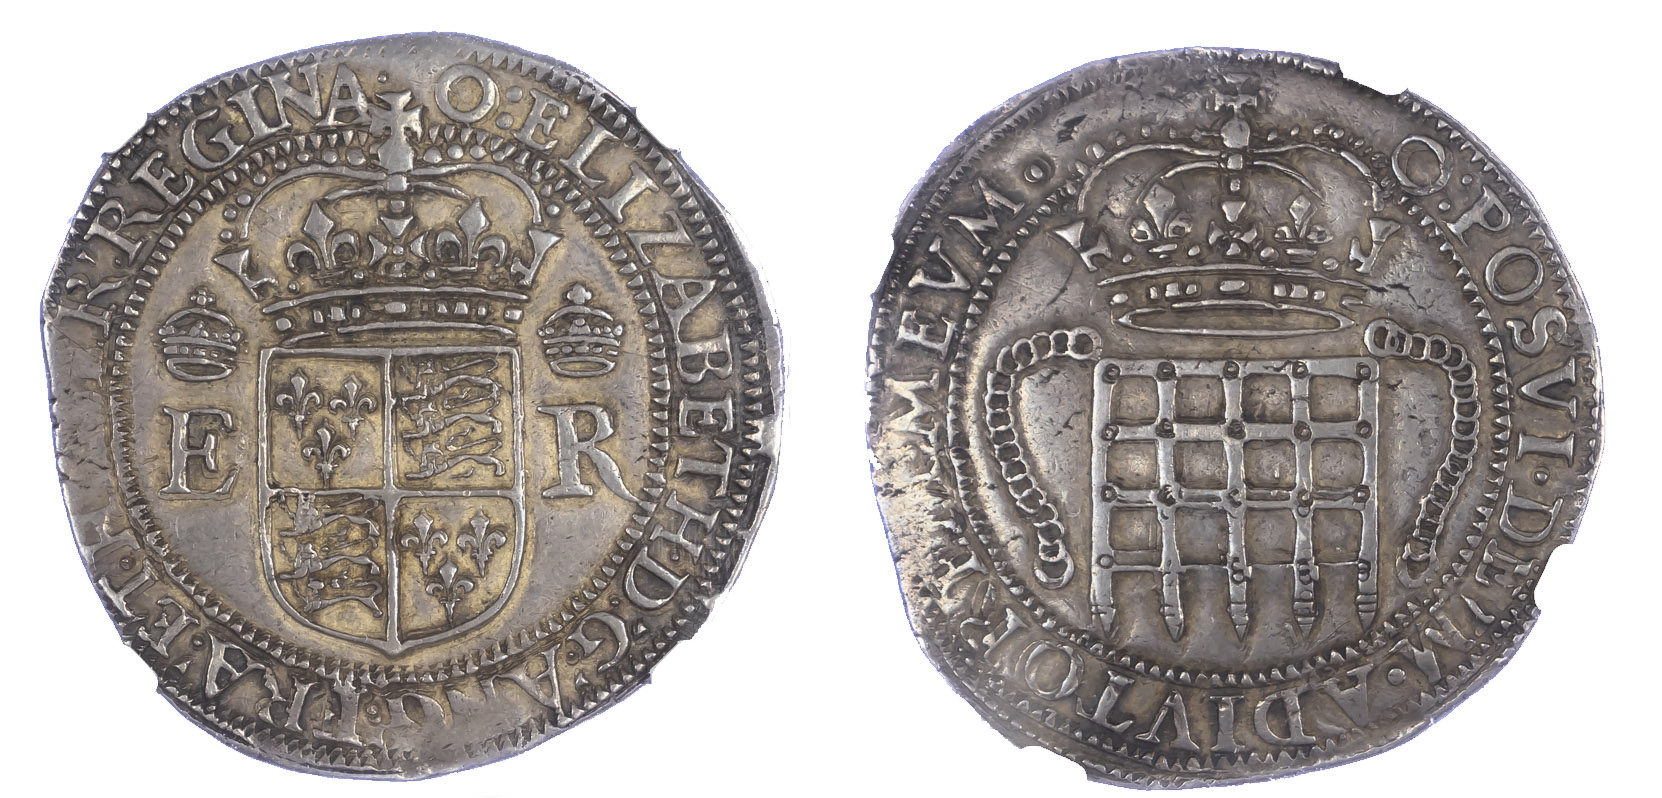 Elizabeth I Portcullis Money Four Testerns S2607B